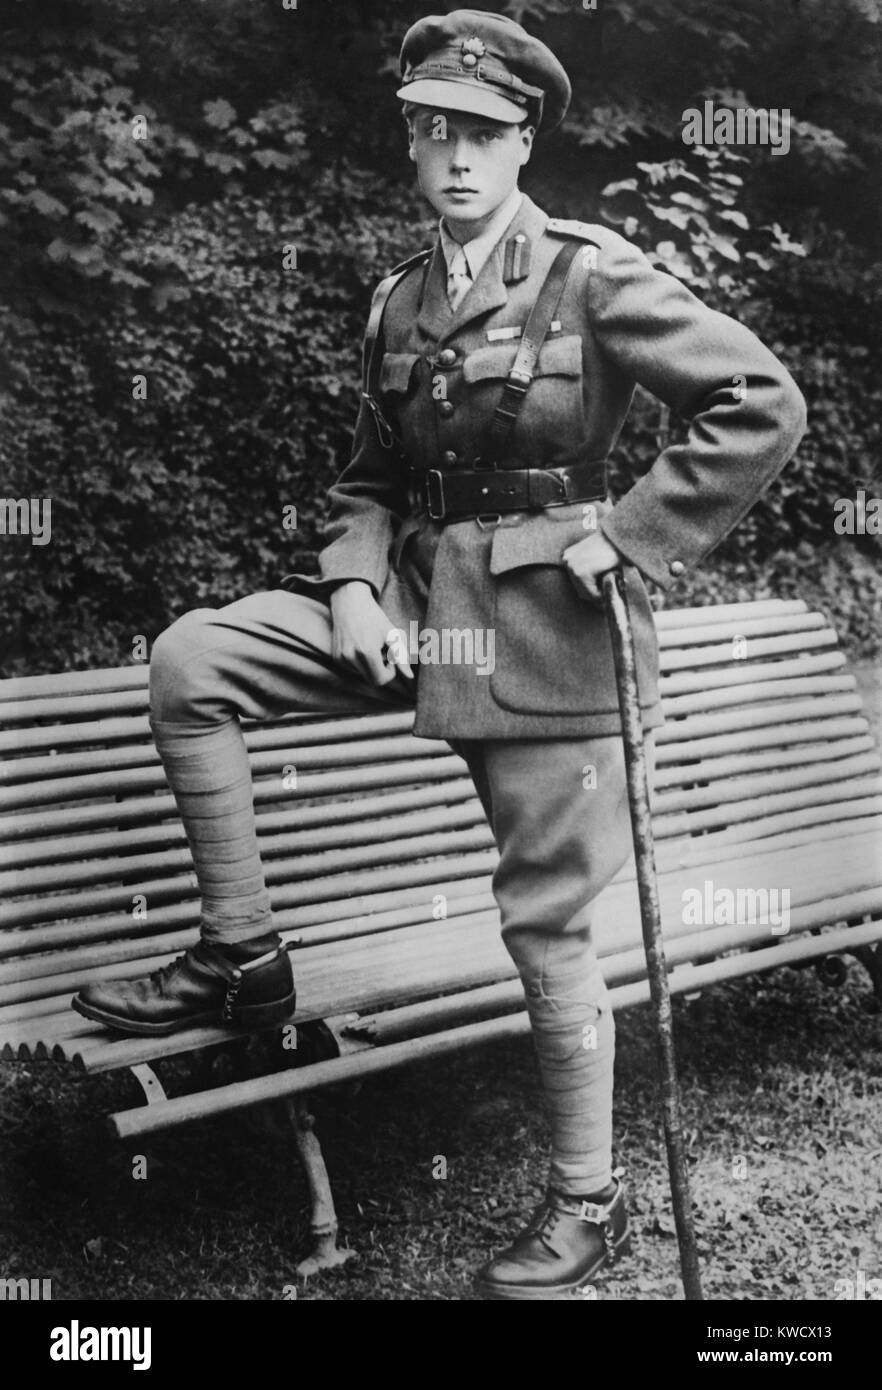 Prince of Wales, the future Edward VIII, of Britain, c. 1915 (BSLOC_2017_1_85) - Stock Image